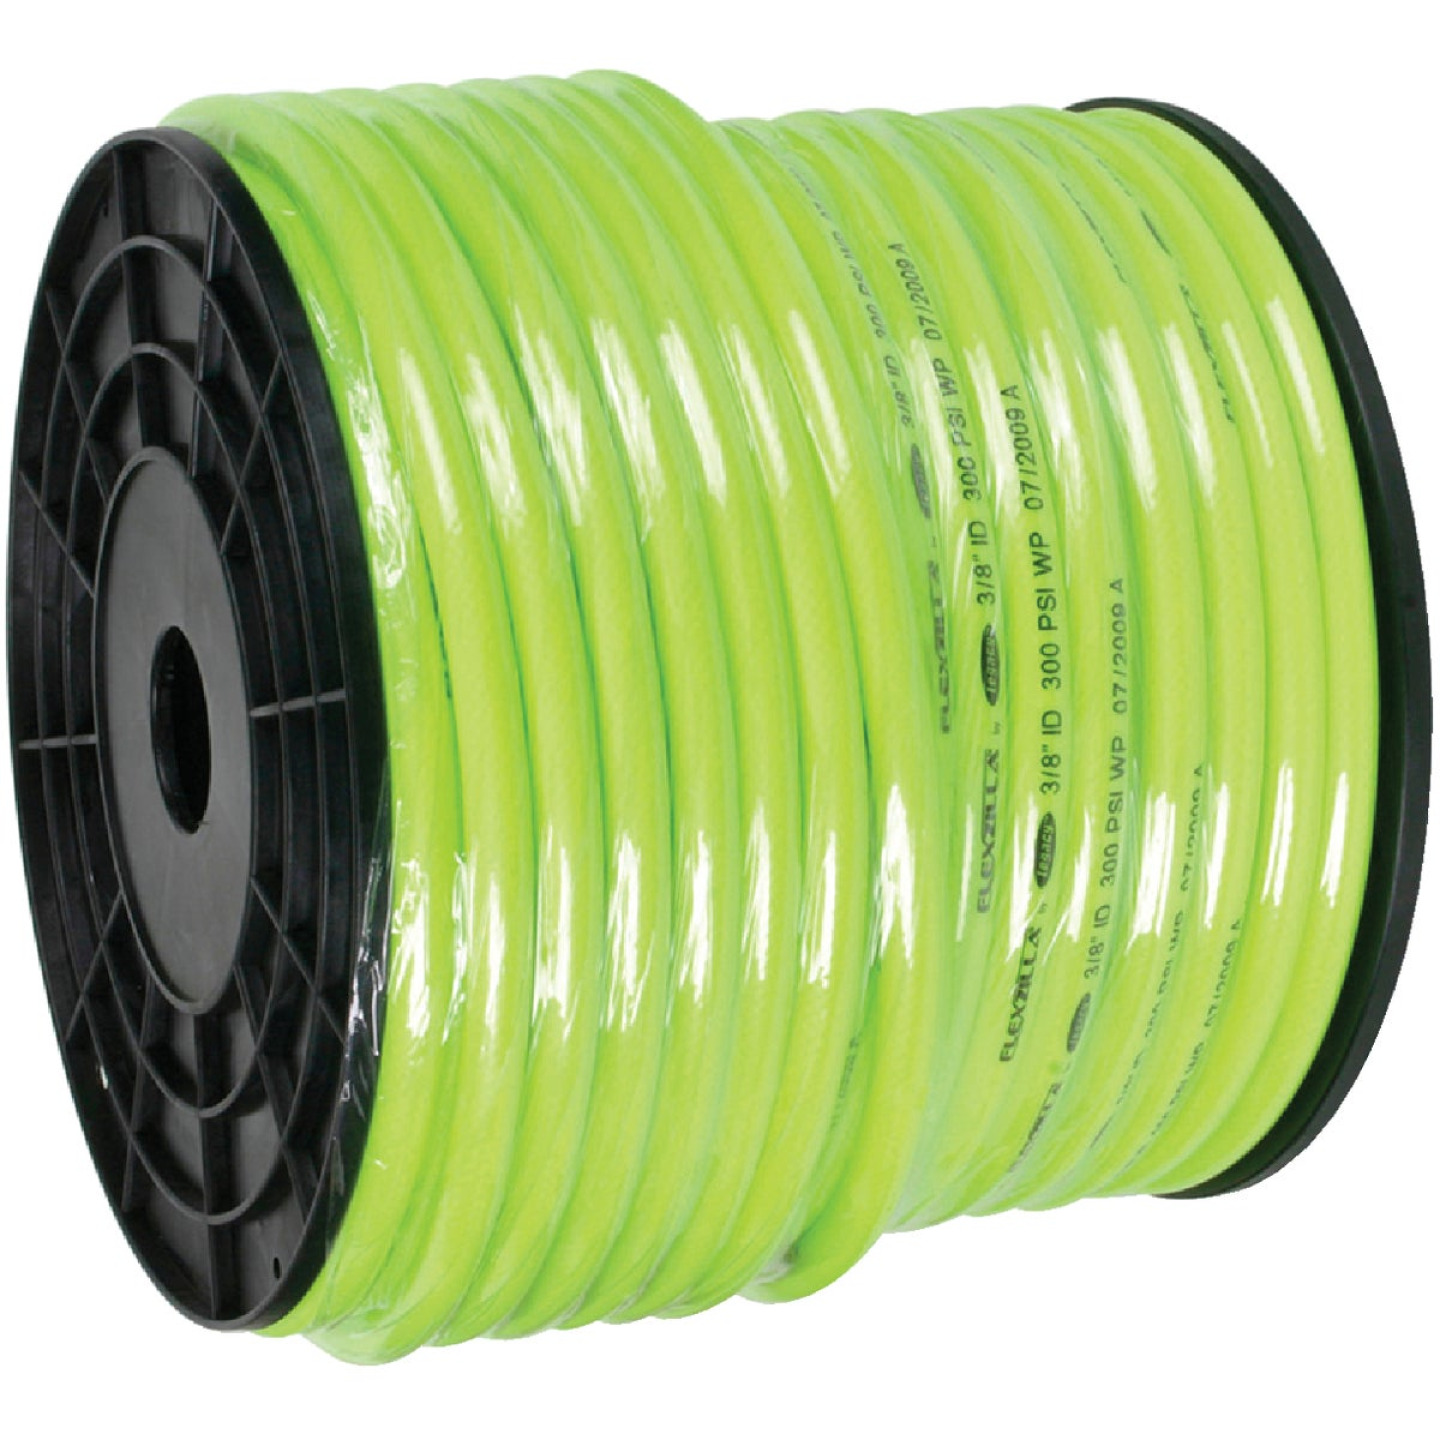 Flexilla 3/8 In. x 250 Ft. Polymer-Blend Bulk Air Hose Image 1